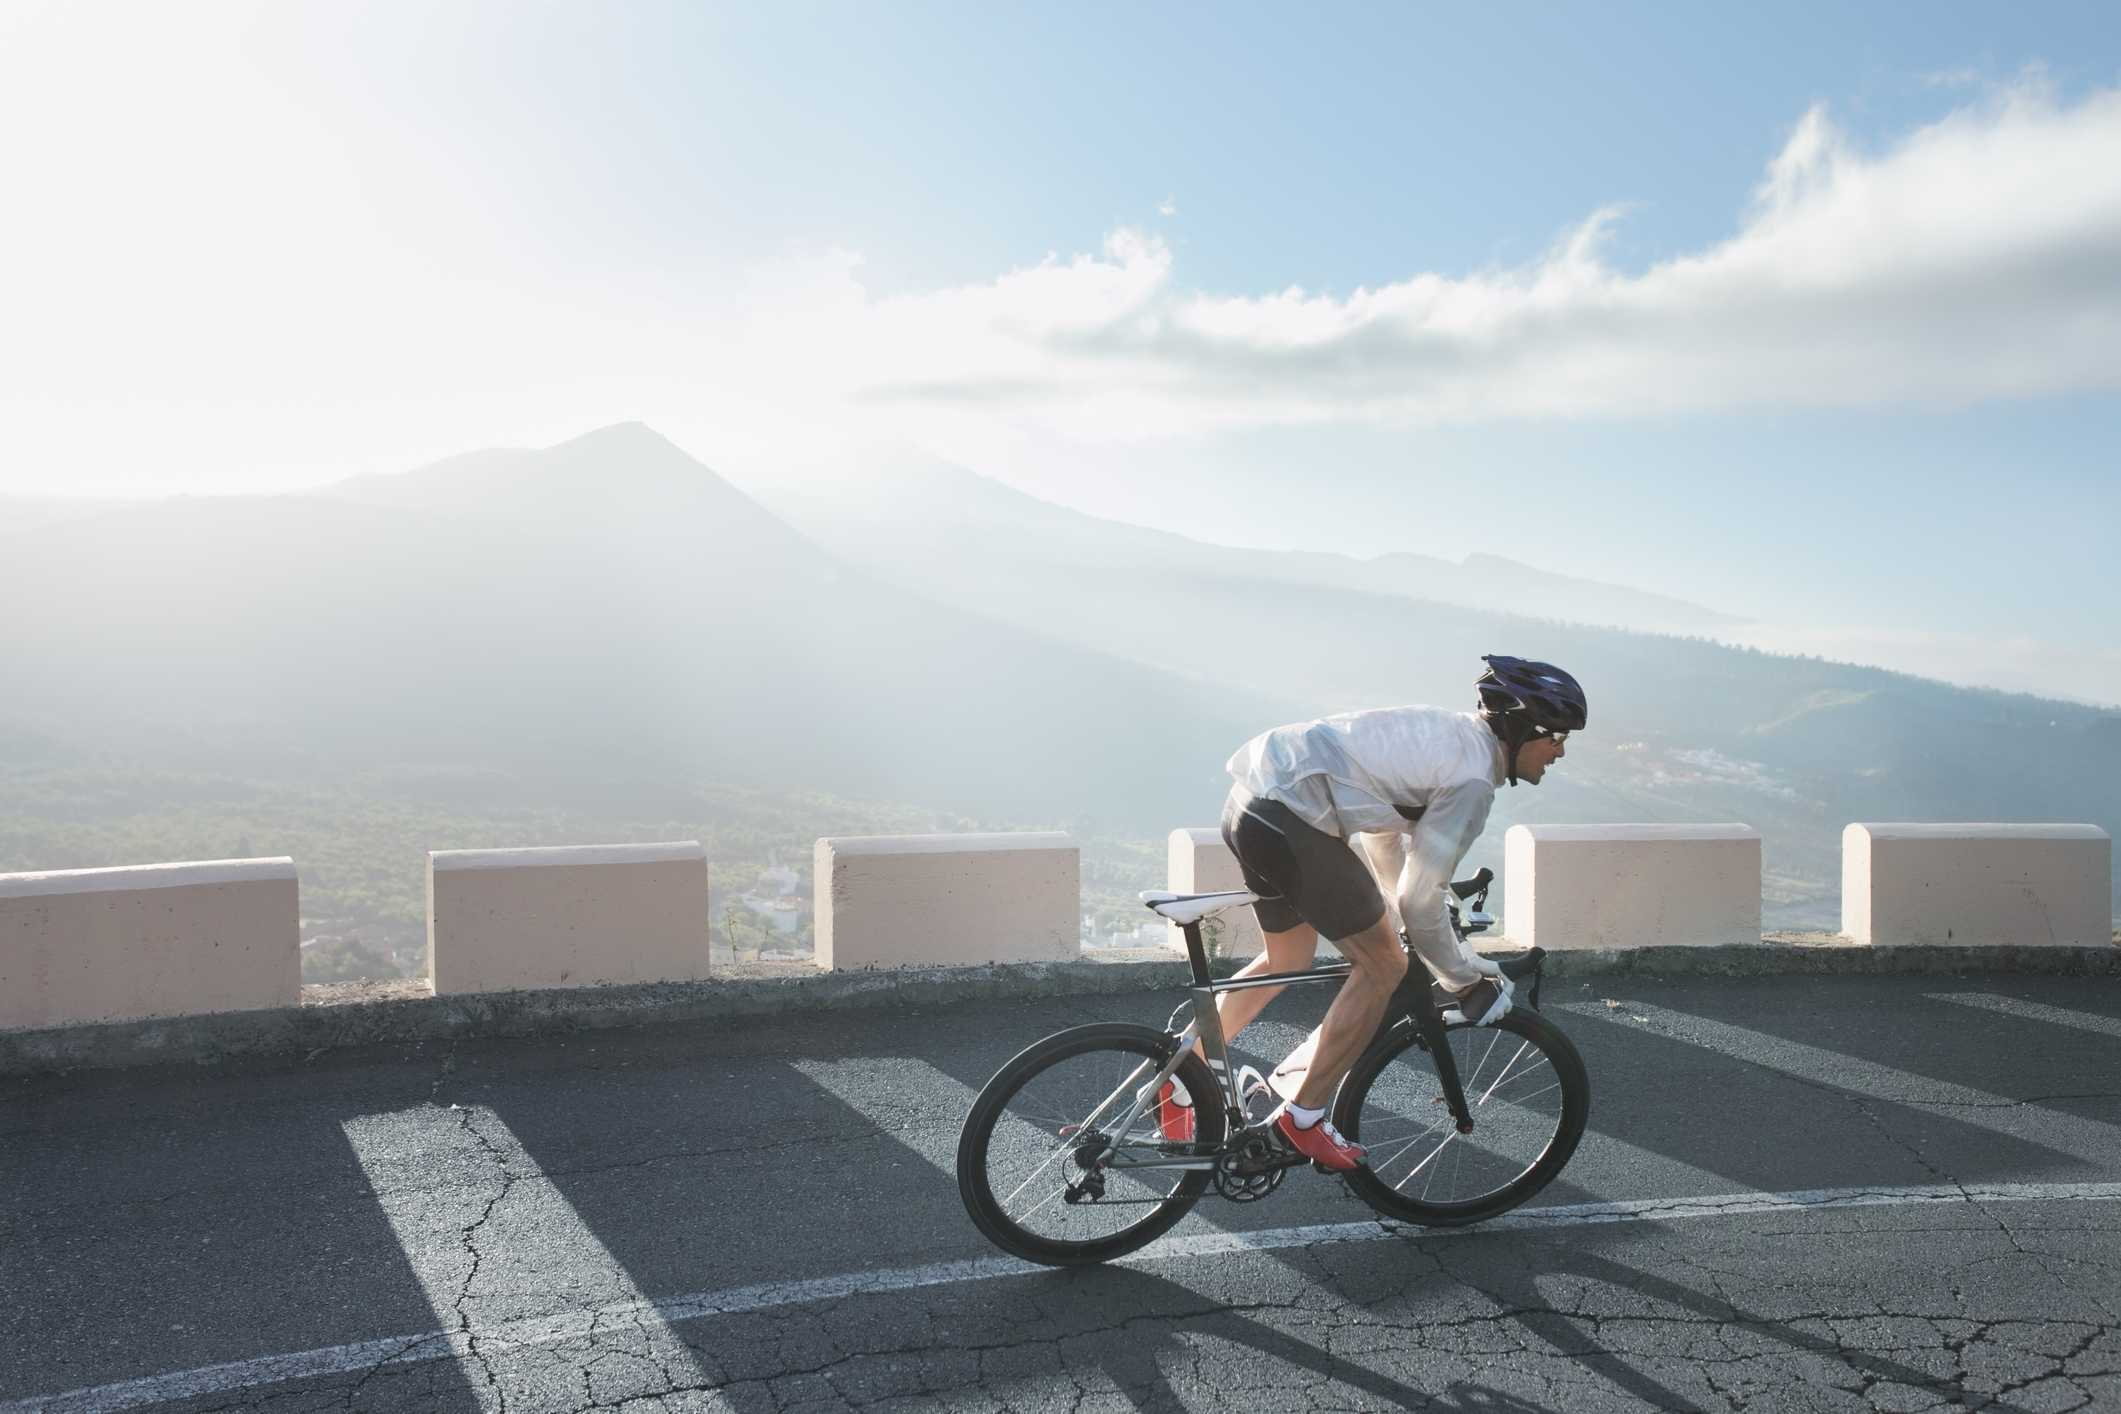 Cyclist riding on mountain road